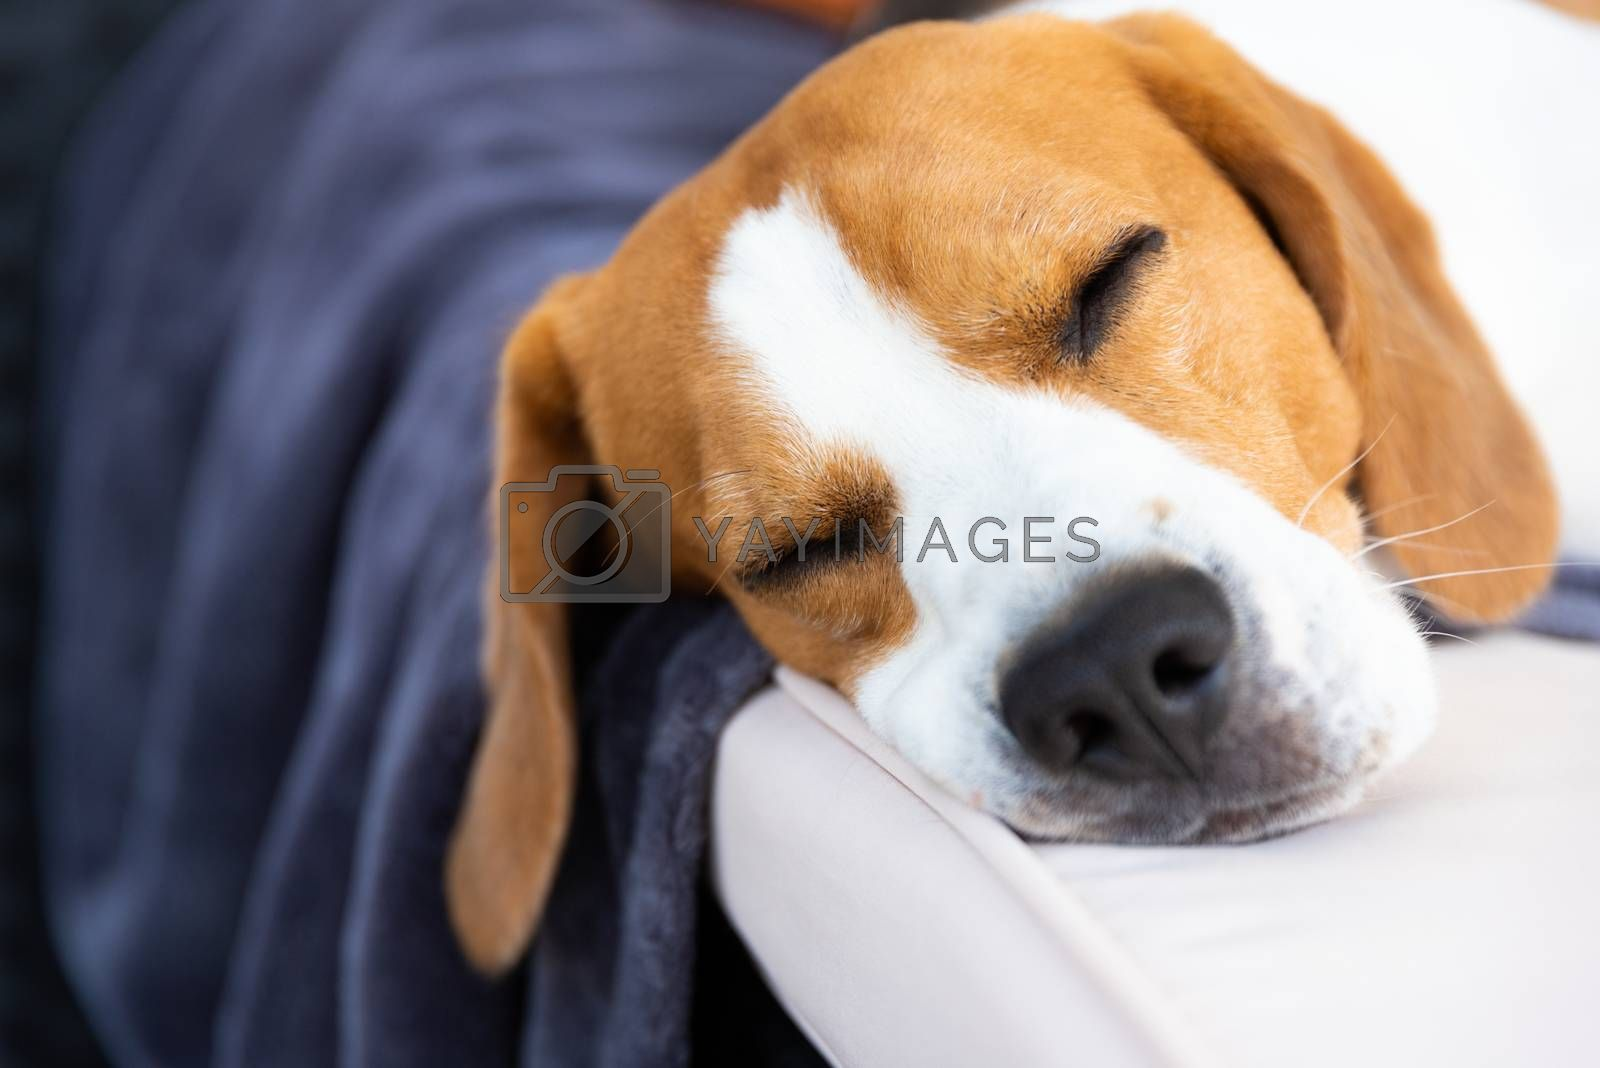 Summertime in the garden. Cute Beagle dog resting in shade on the garden sofa. Head closeup, copy space.